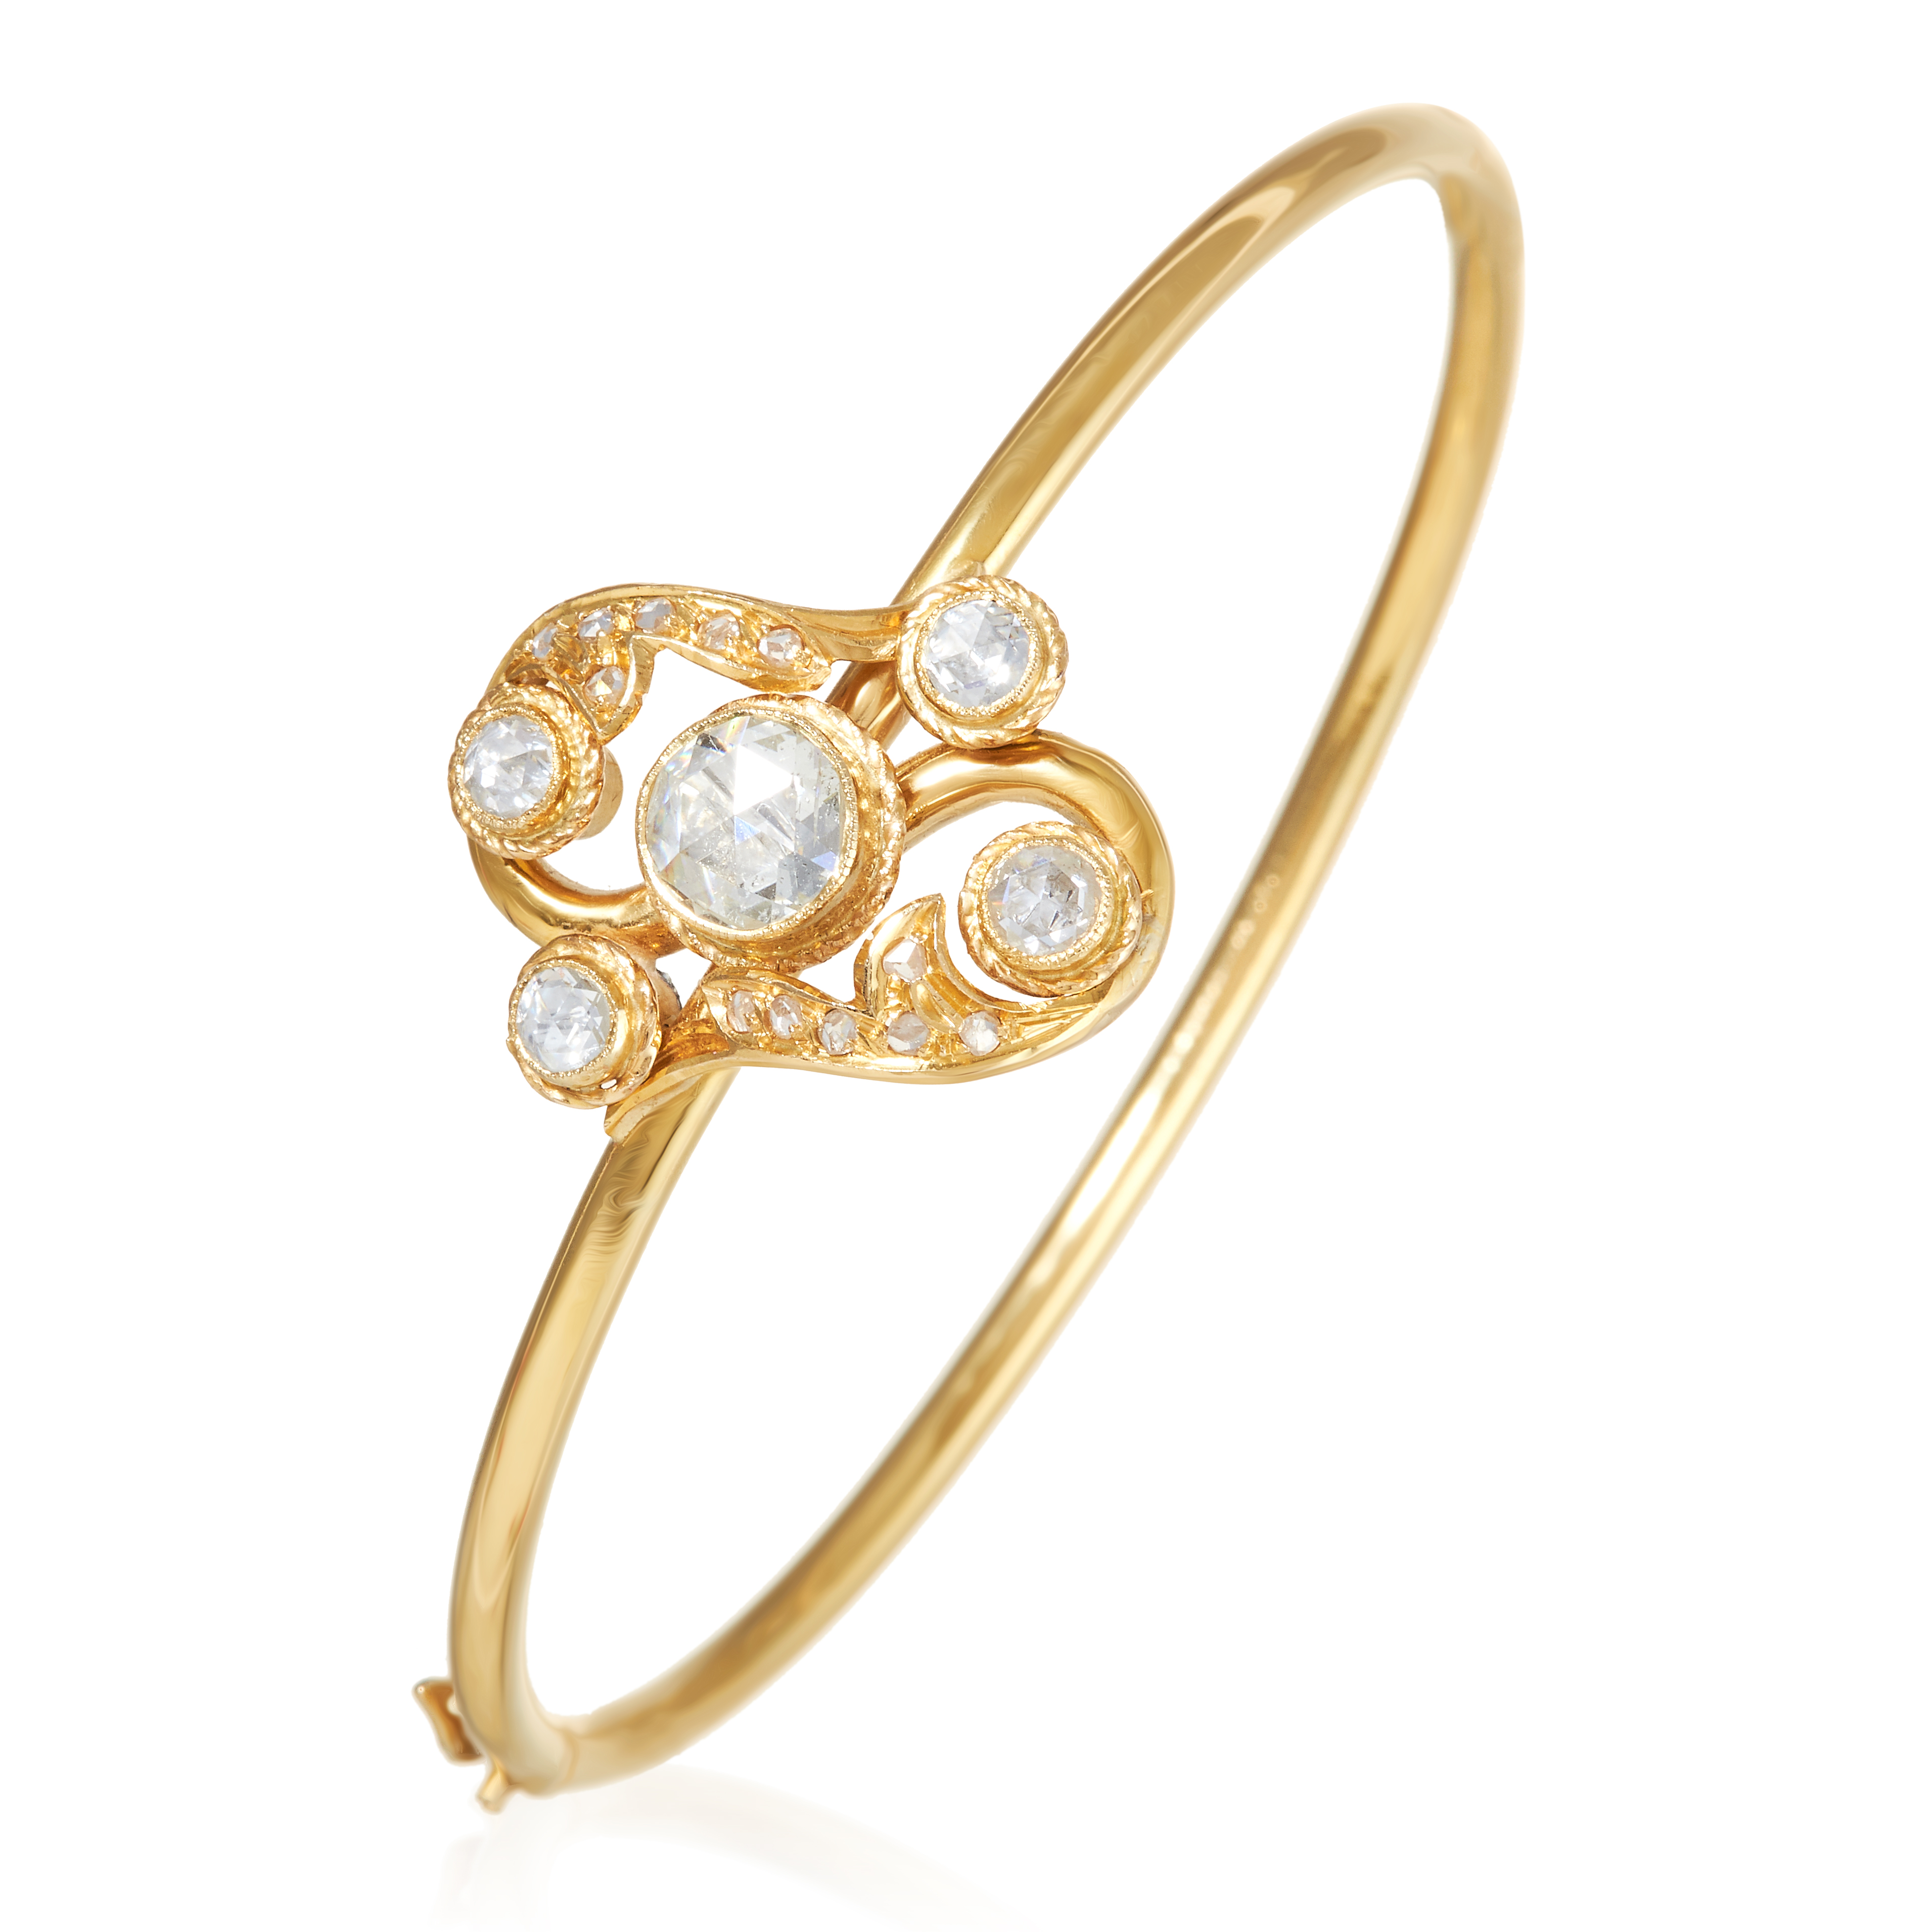 Los 19 - AN ANTIQUE DIAMOND BANGLE in high carat yellow gold, the Art Nouveau design formed of a scrolling